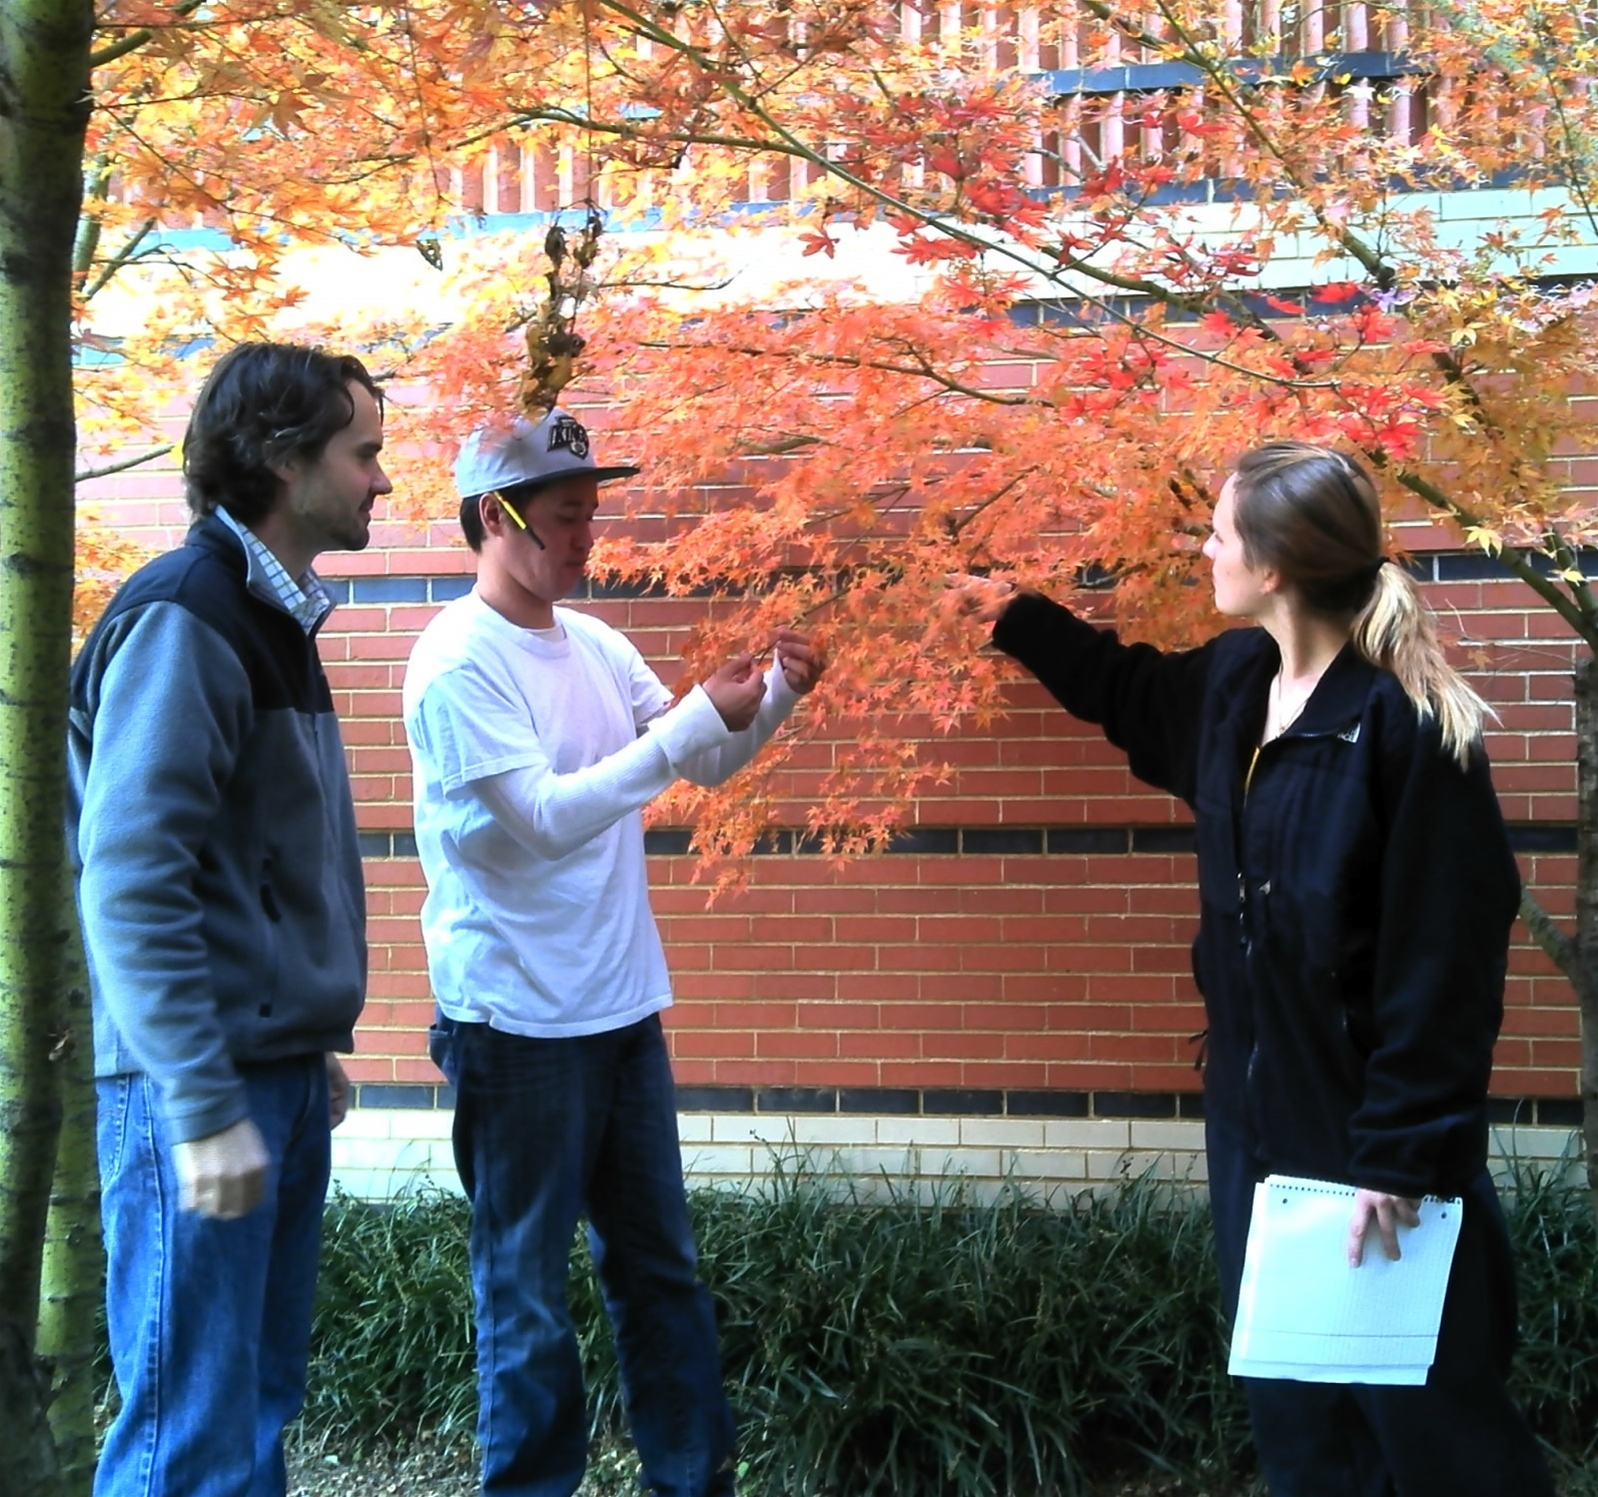 Dr. Daniel Lundberg, John Cha (Chemistry major), and Sheena O'Donnell (Biology major/Chemistry minor) outside the Jordan Student Academic Center collecting a sample.